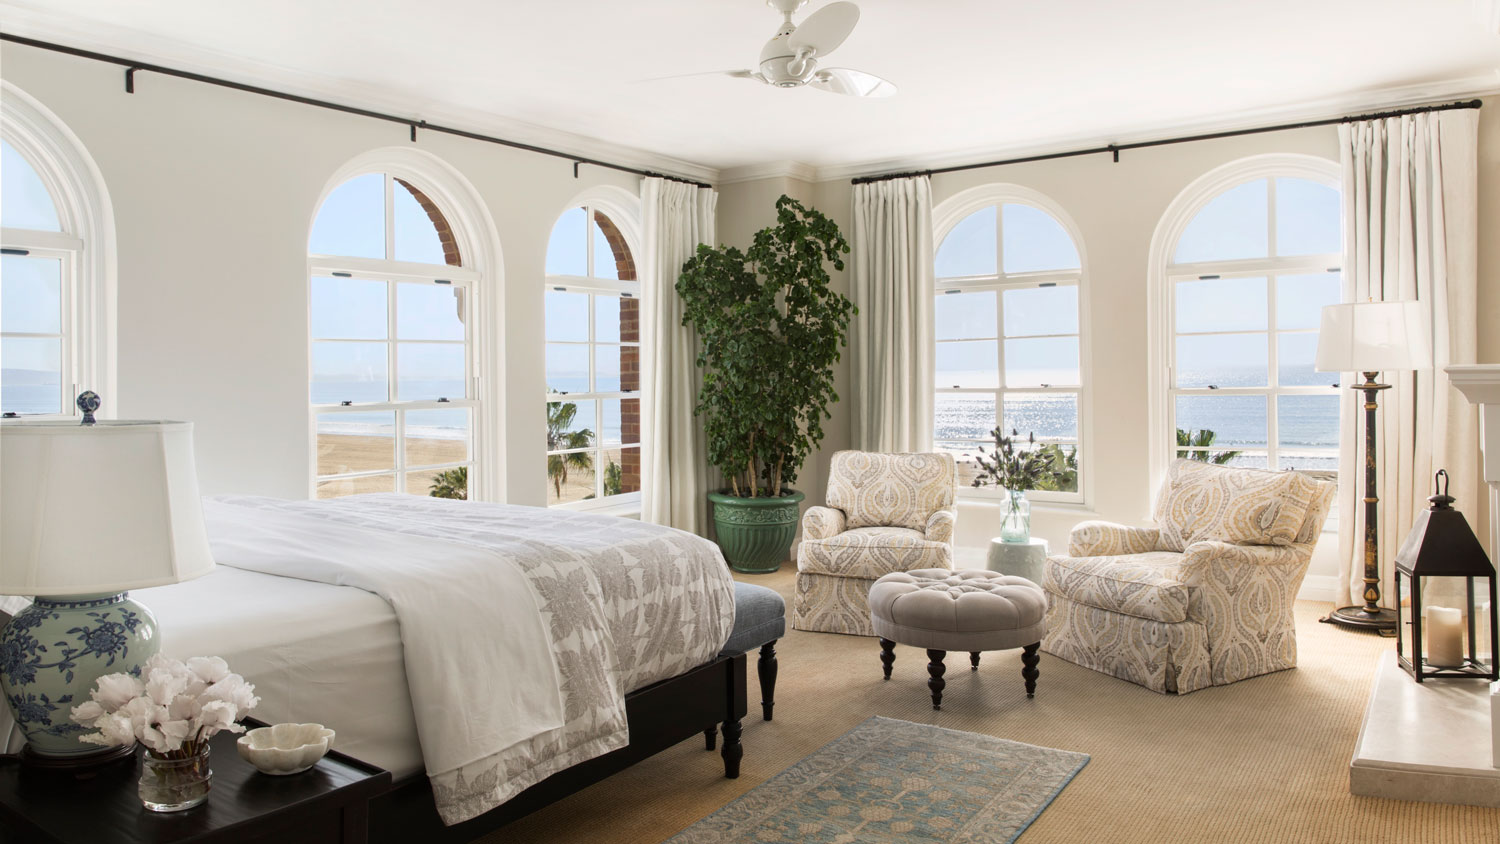 Pacific View Suite at Casa Del Mar Santa Monica hotel honeymoon ideas